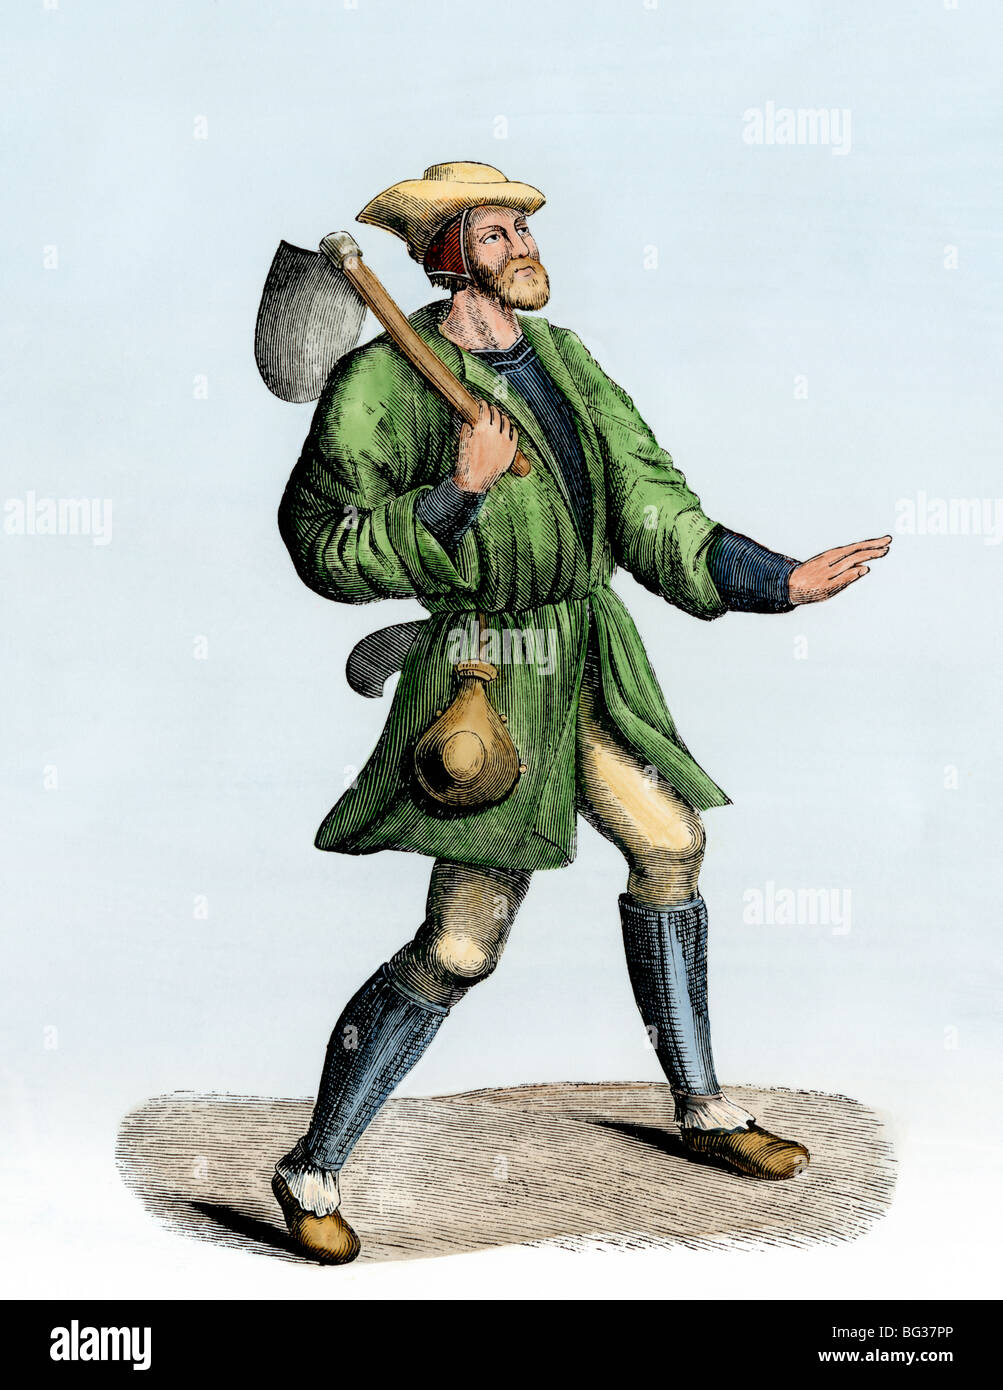 Peasant carrying a shovel in the 1400s - Stock Image